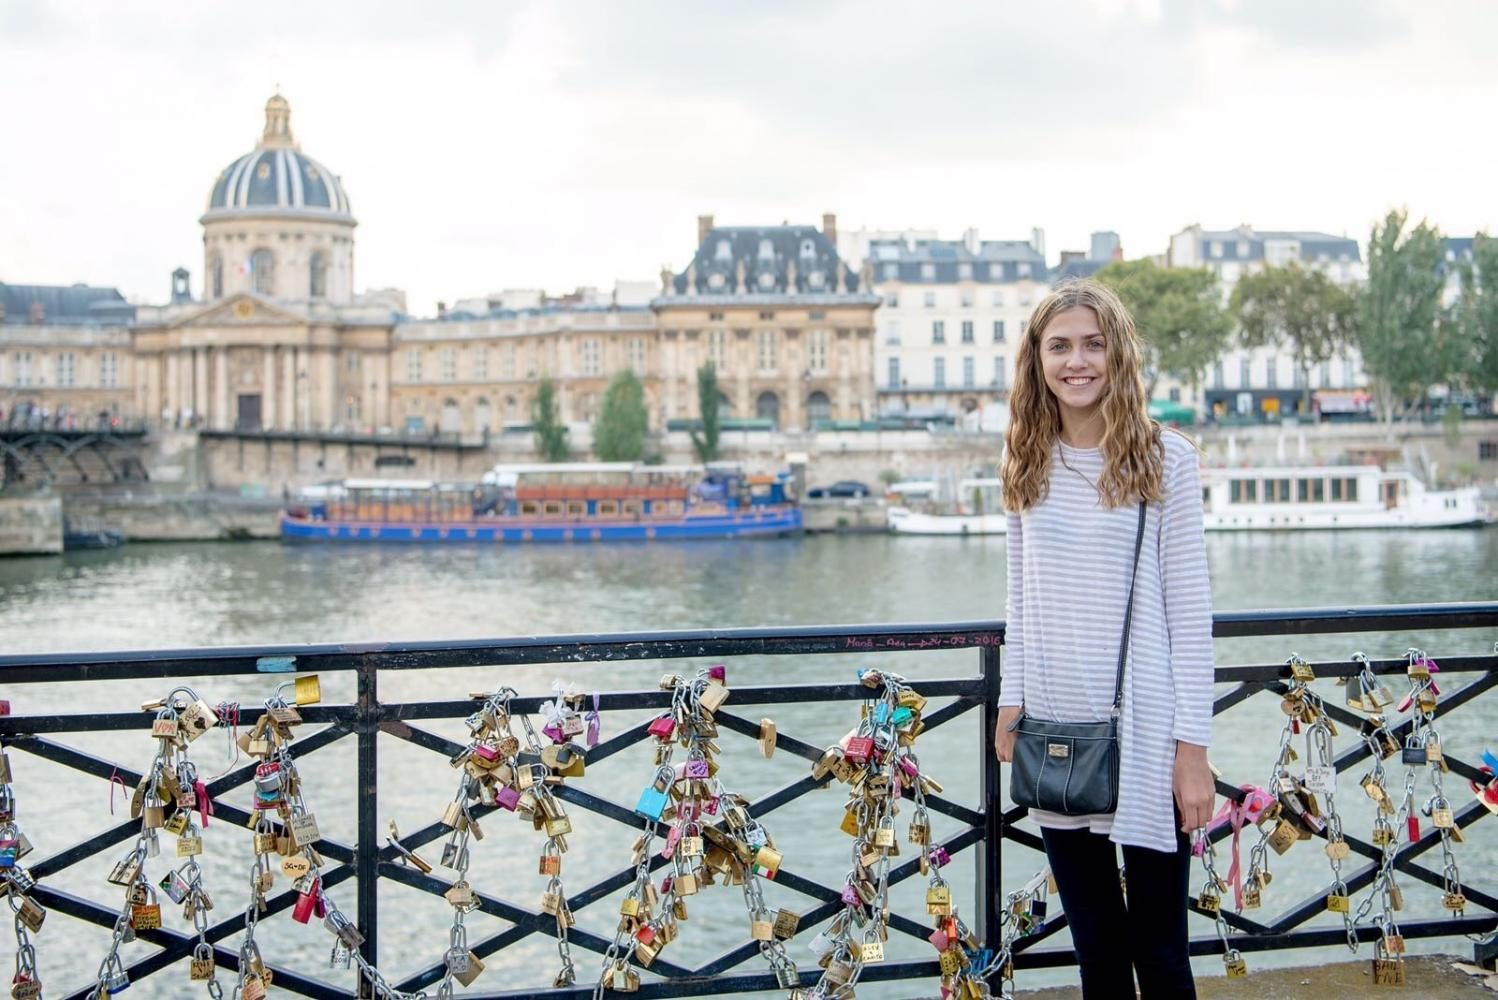 Brynn Franckowiak down at the River Seine next to the